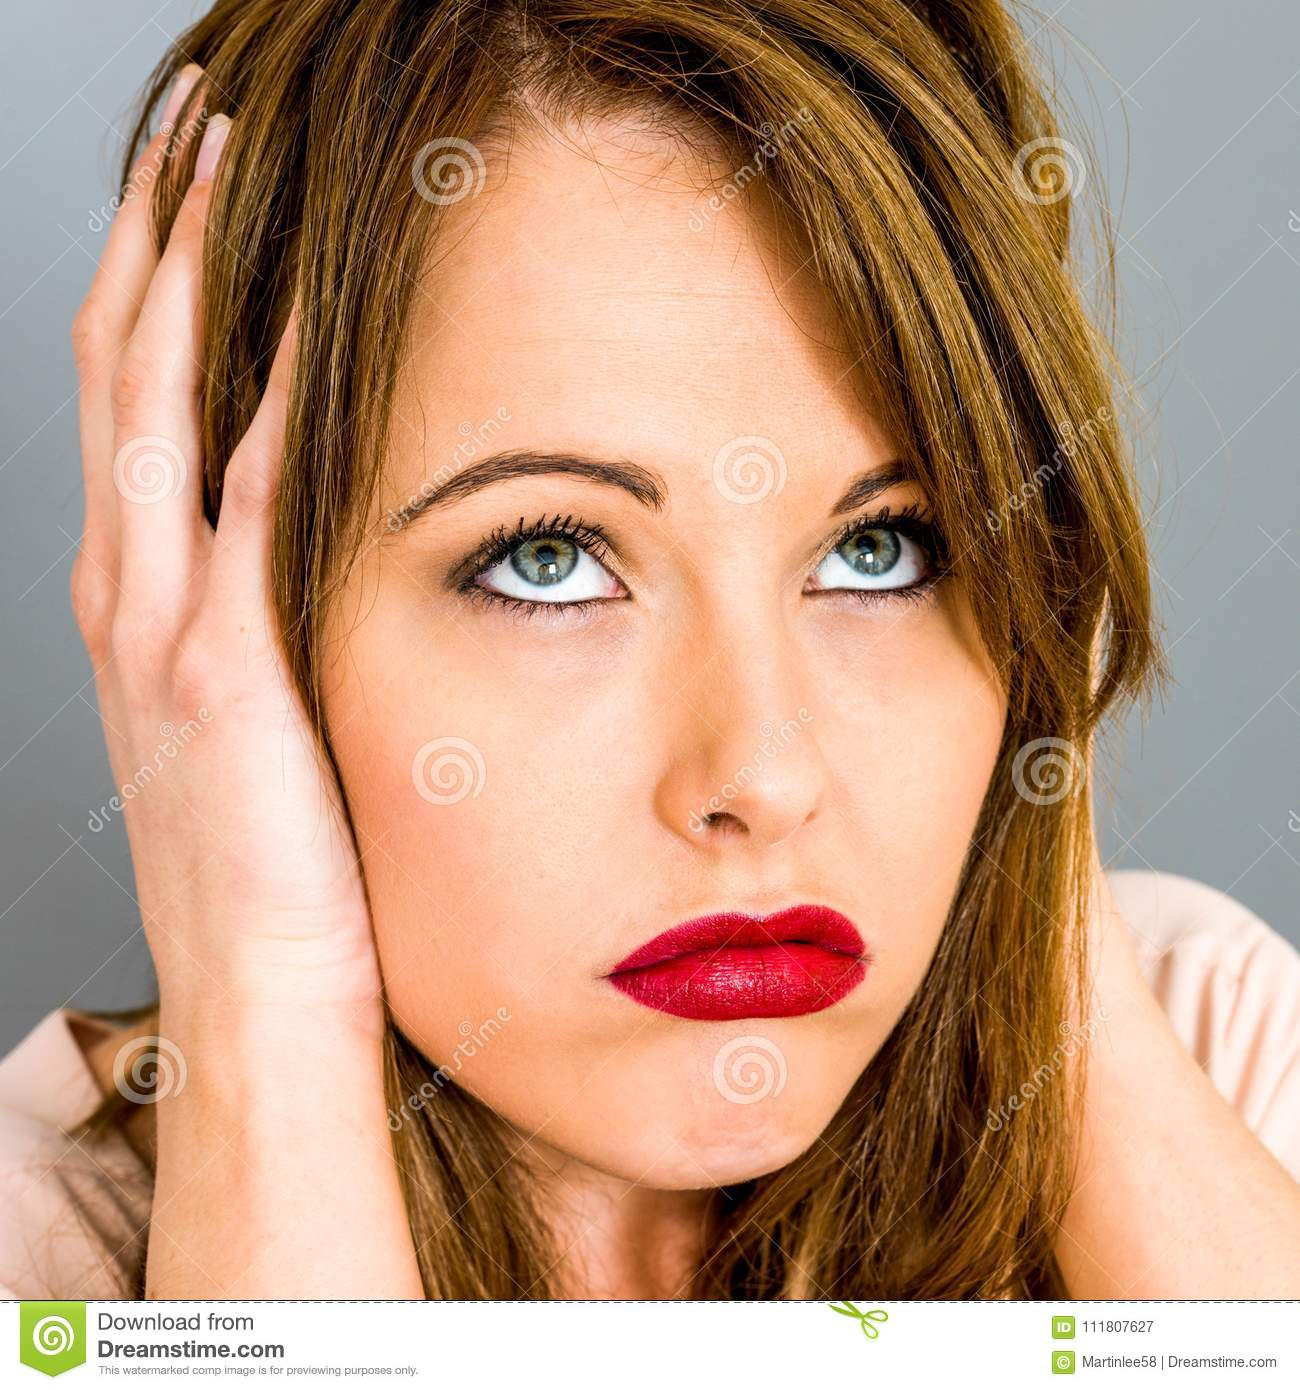 Young Woman Looking Bored And Upset